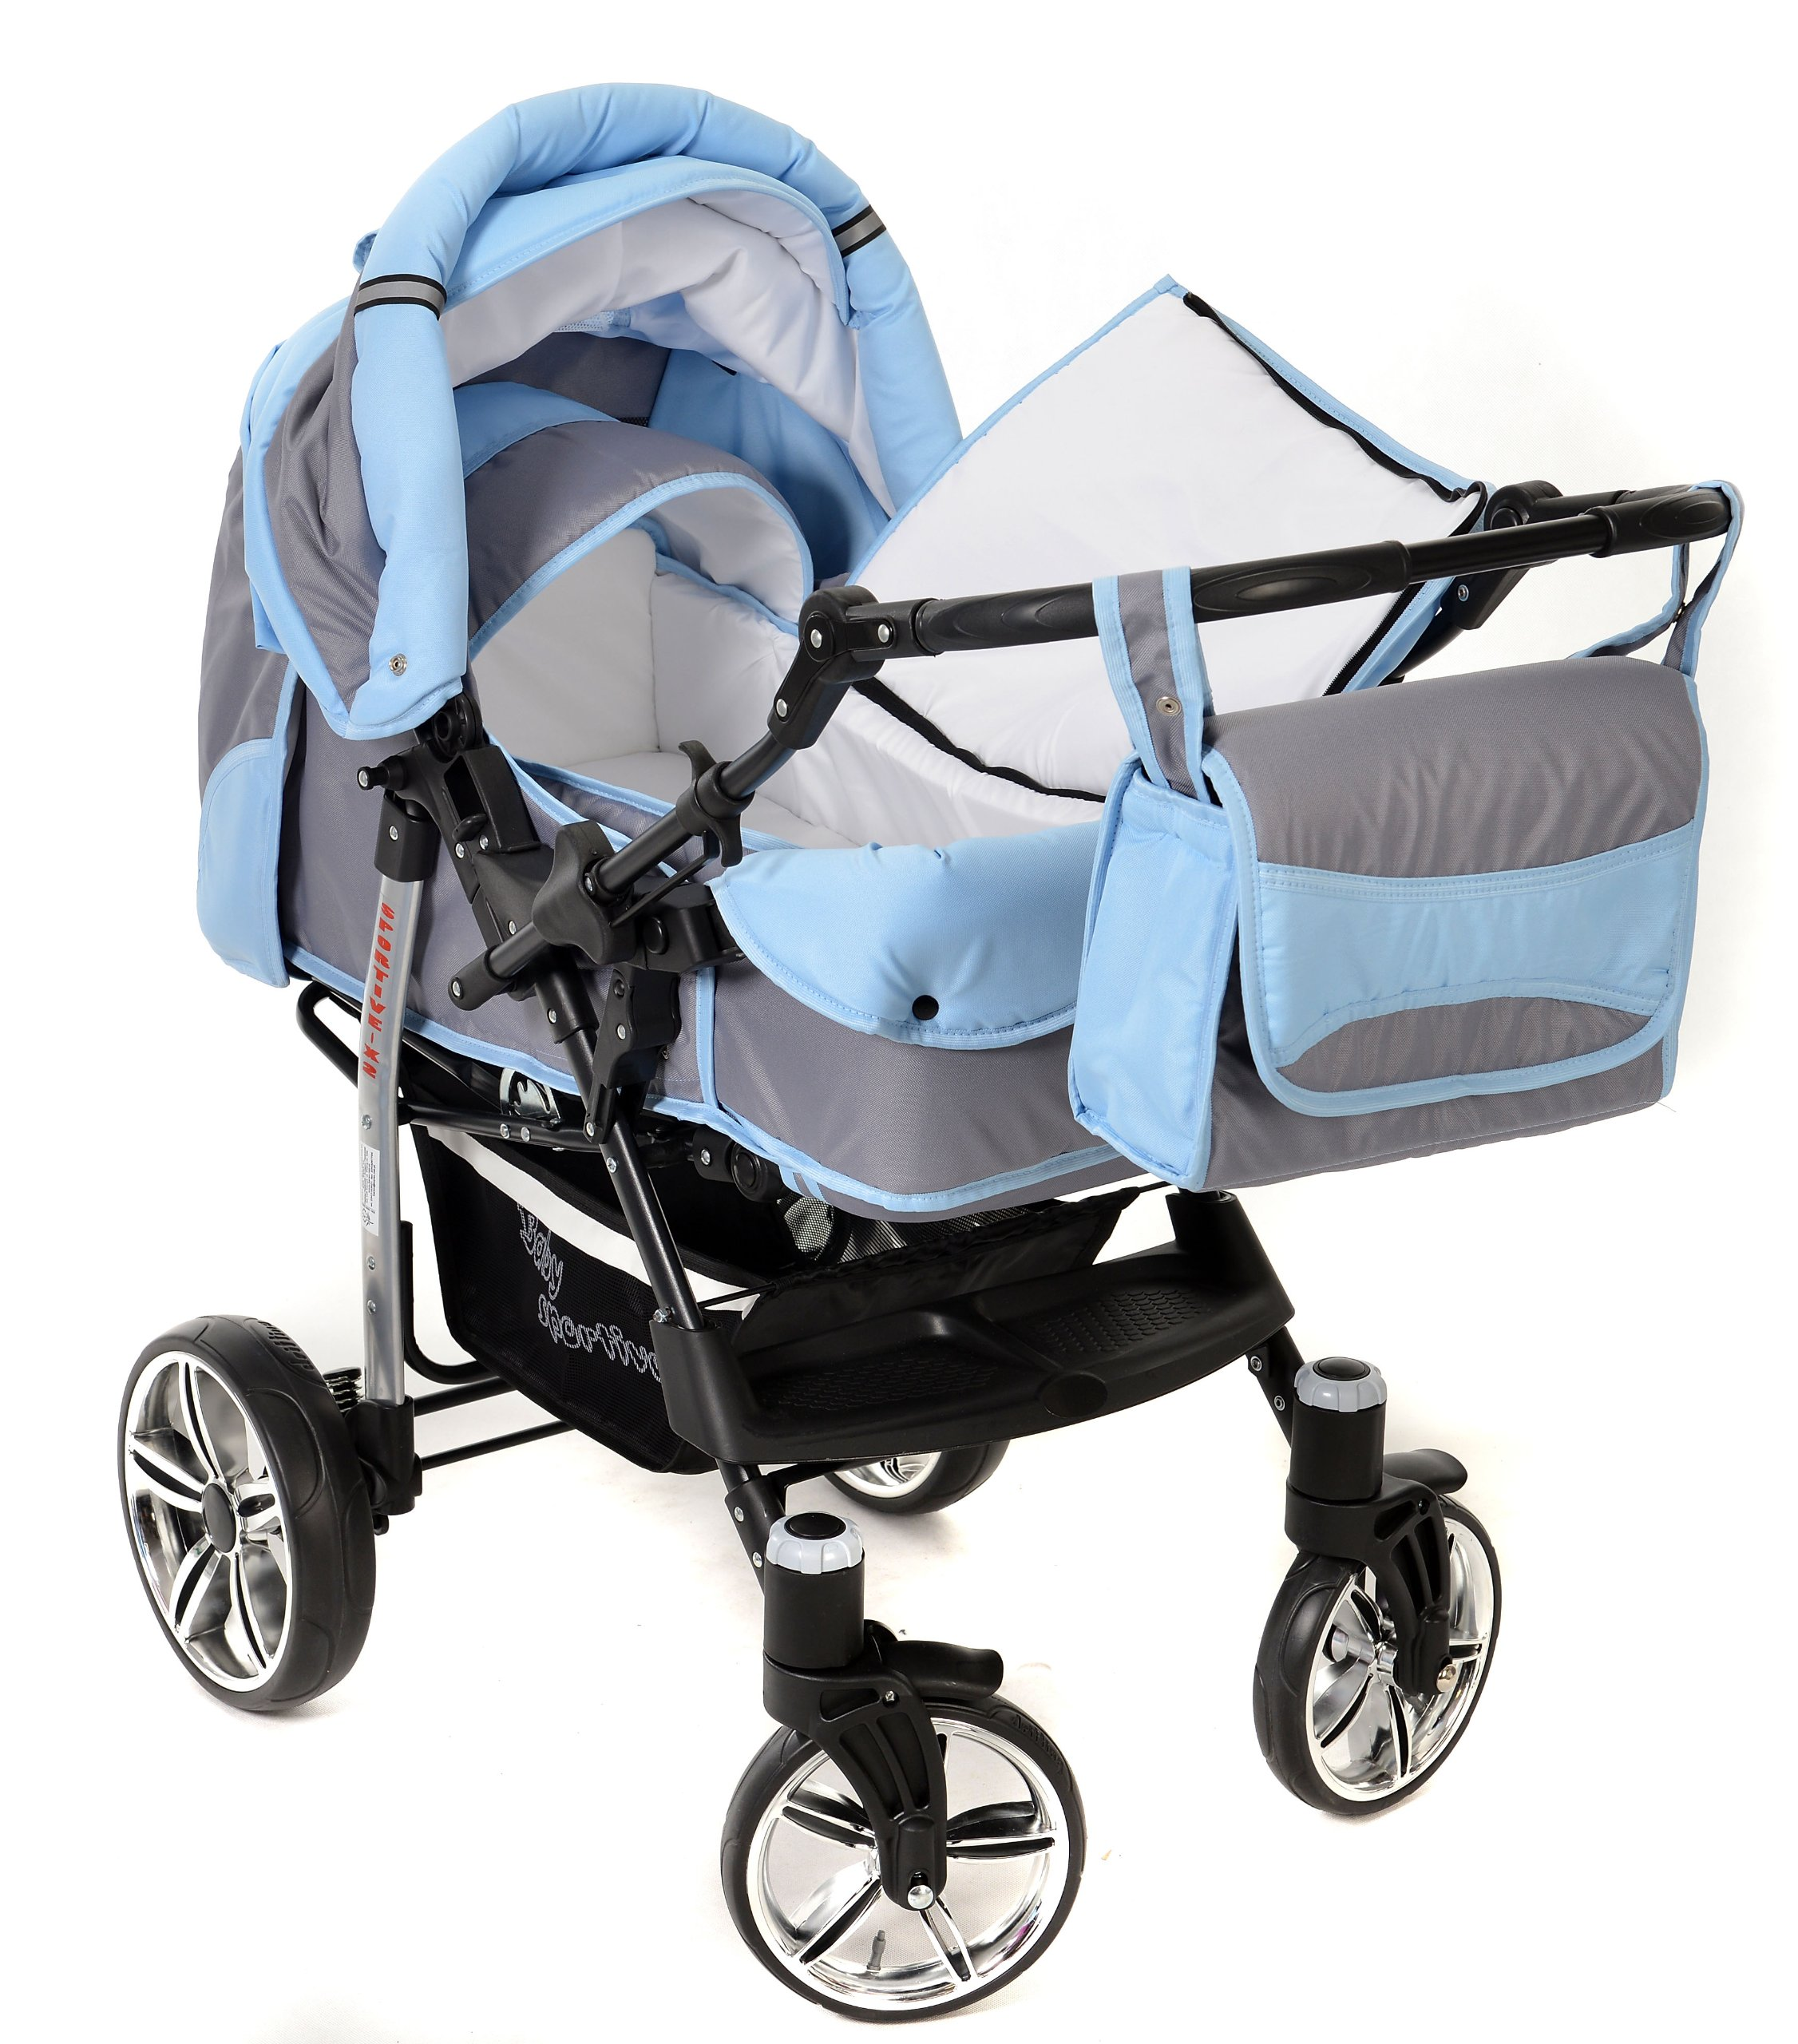 Sportive X2, 3-in-1 Travel System incl. Baby Pram with Swivel Wheels, Car Seat, Pushchair & Accessories (3-in-1 Travel System, Pale Grey & Blue)  3 in 1 Travel System All in One Set - Pram, Car Carrier Seat and Sport Buggy + Accessories: carrier bag, rain protection, mosquito net, changing mat, removable bottle holder and removable tray for your child's bits and pieces Suitable from birth, Easy Quick Folding System; Large storage basket; Turnable handle bar that allows to face or rear the drive direction; Quick release rear wheels for easy cleaning after muddy walks Front lockable 360o swivel wheels for manoeuvrability , Small sized when folded, fits into many small car trunks, Carry-cot with a removable hood, Reflective elements for better visibility 8